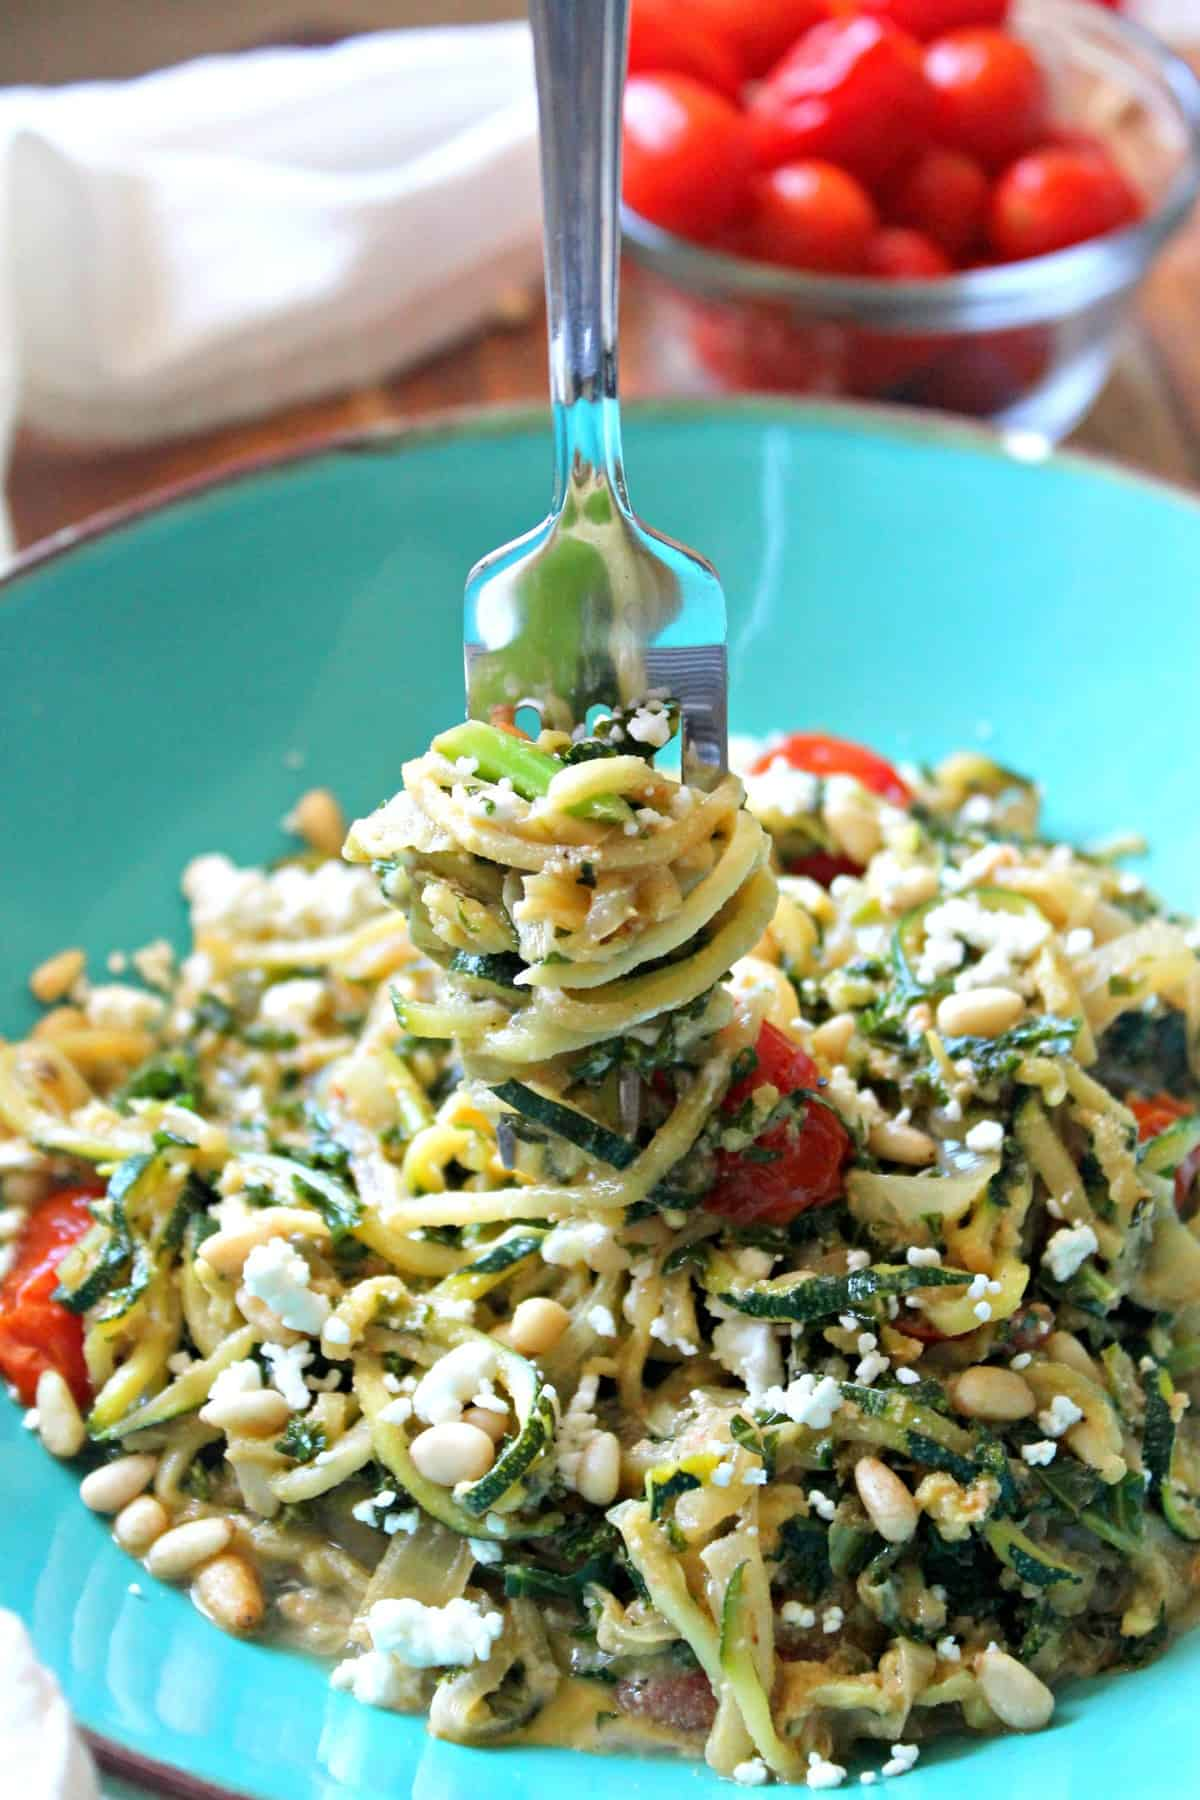 Need a way to use up that summer zucchini?Zucchini Noodles with Kale, Onion, and Goat Cheese will do the trick while giving you a veggie-filled dinner option that comes together in minutes! Topped with pine nuts for texture and an extra sprinkle of goat cheese, this simple dish is a great option for Meatless Mondays or a quick, healthy meal any day of the week.